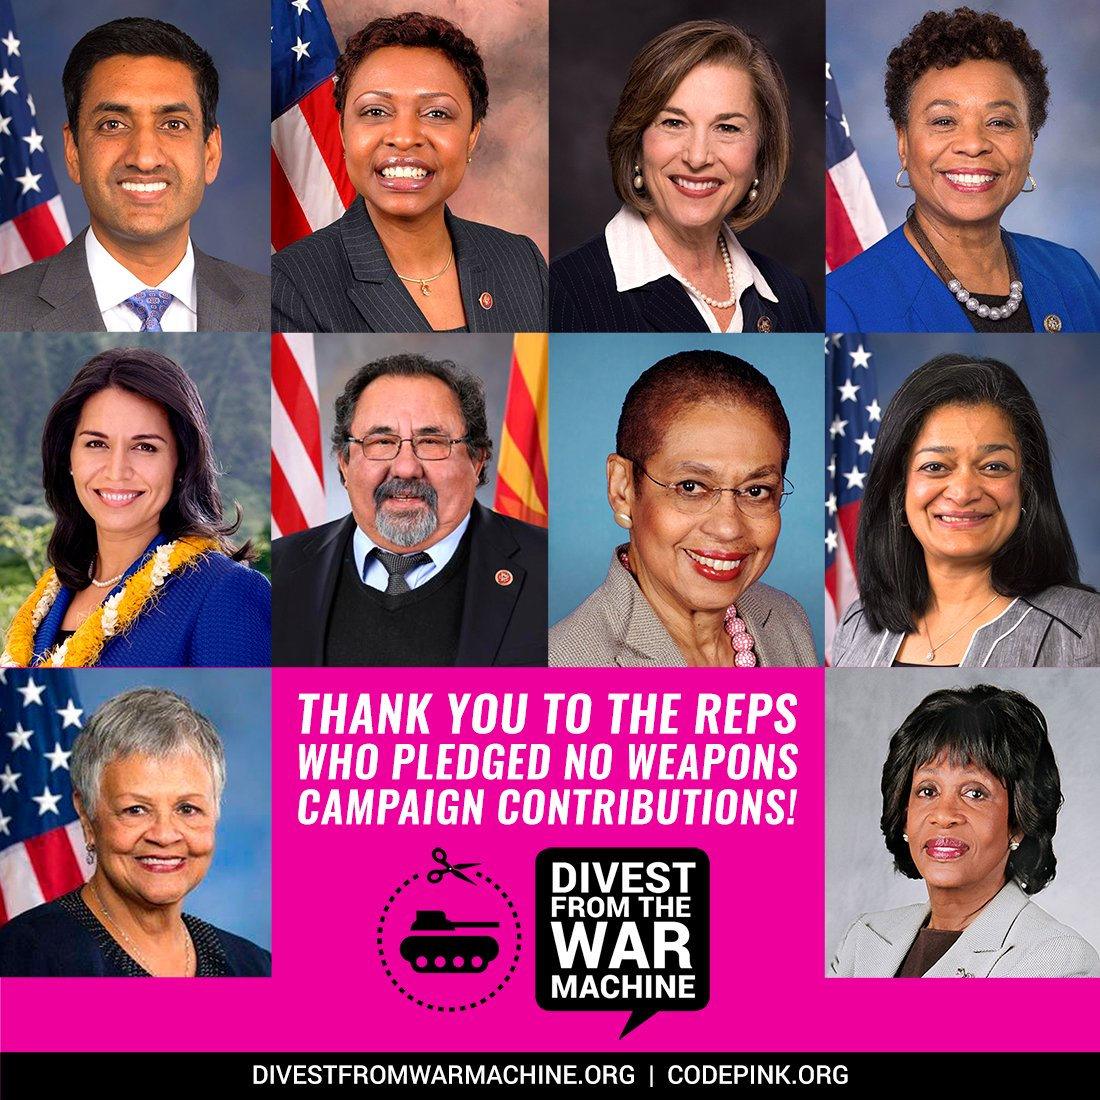 Since beginning our #DivestFromWar work, 11 Reps have pledged to not accept campaign donations from the top five weapons' manufacturers. Now that the Congressional landscape has changed, we need to ask new progressive members to sign the pledge: codepink.org/divest_from_wa…